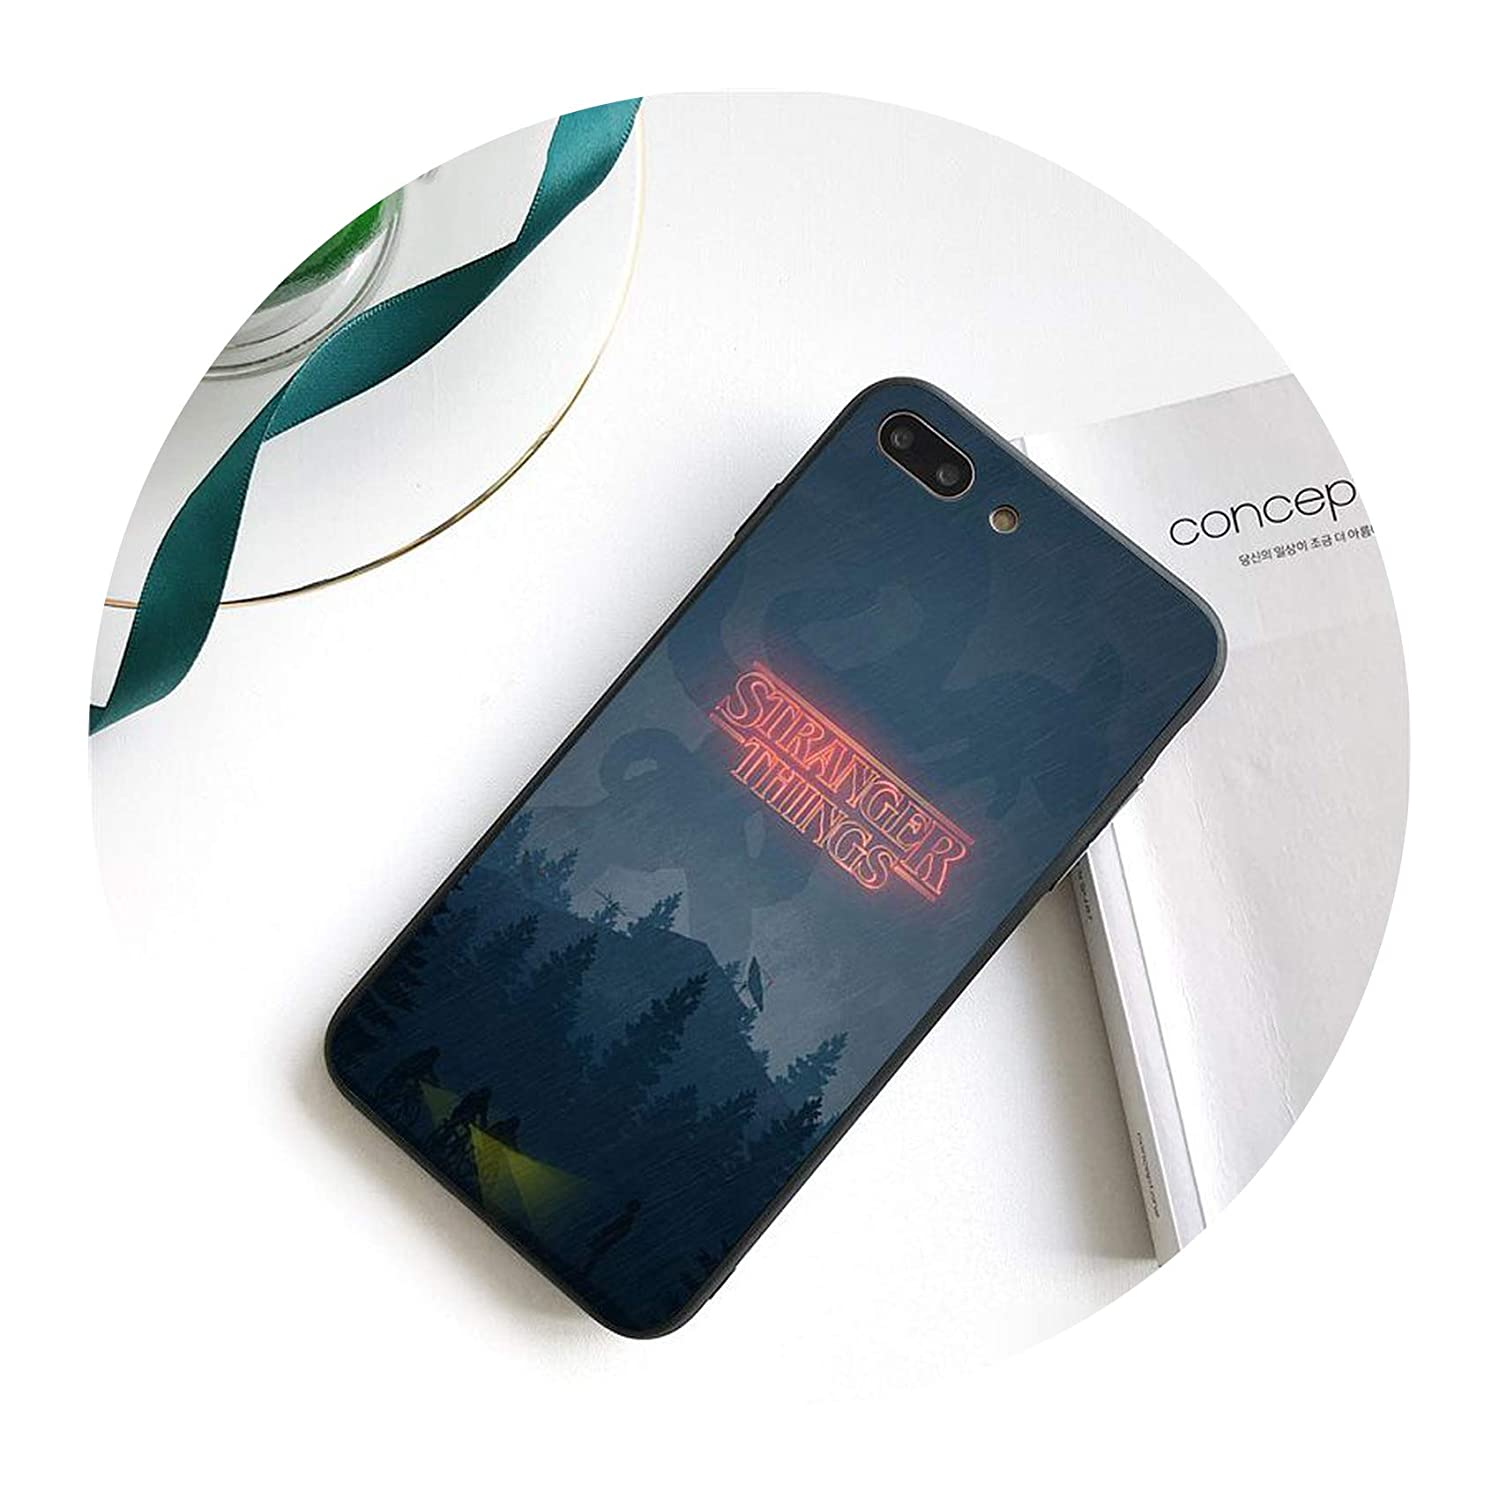 TV Stranger Things Pattern TPU Black Phone Case Shell for iPhone 8 7 6 6S Plus X XS MAX 5 5S SE XR 10 Cover,A13,for iPhone Xs MAX